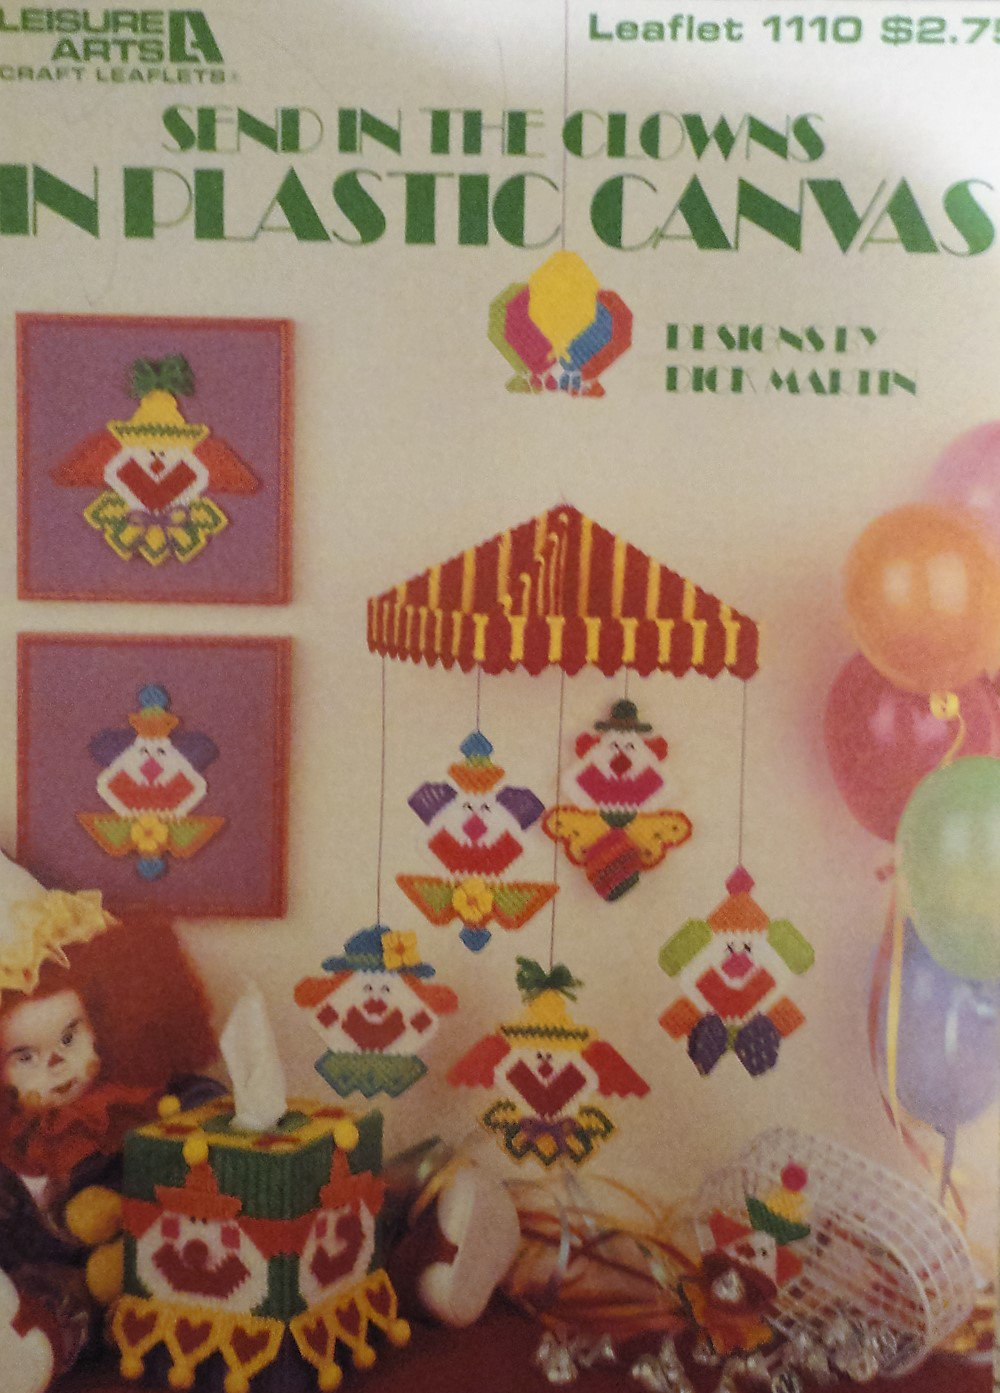 Plastic Canvas Send in the Clowns Designed by Dick Martin Leisure Arts 1110